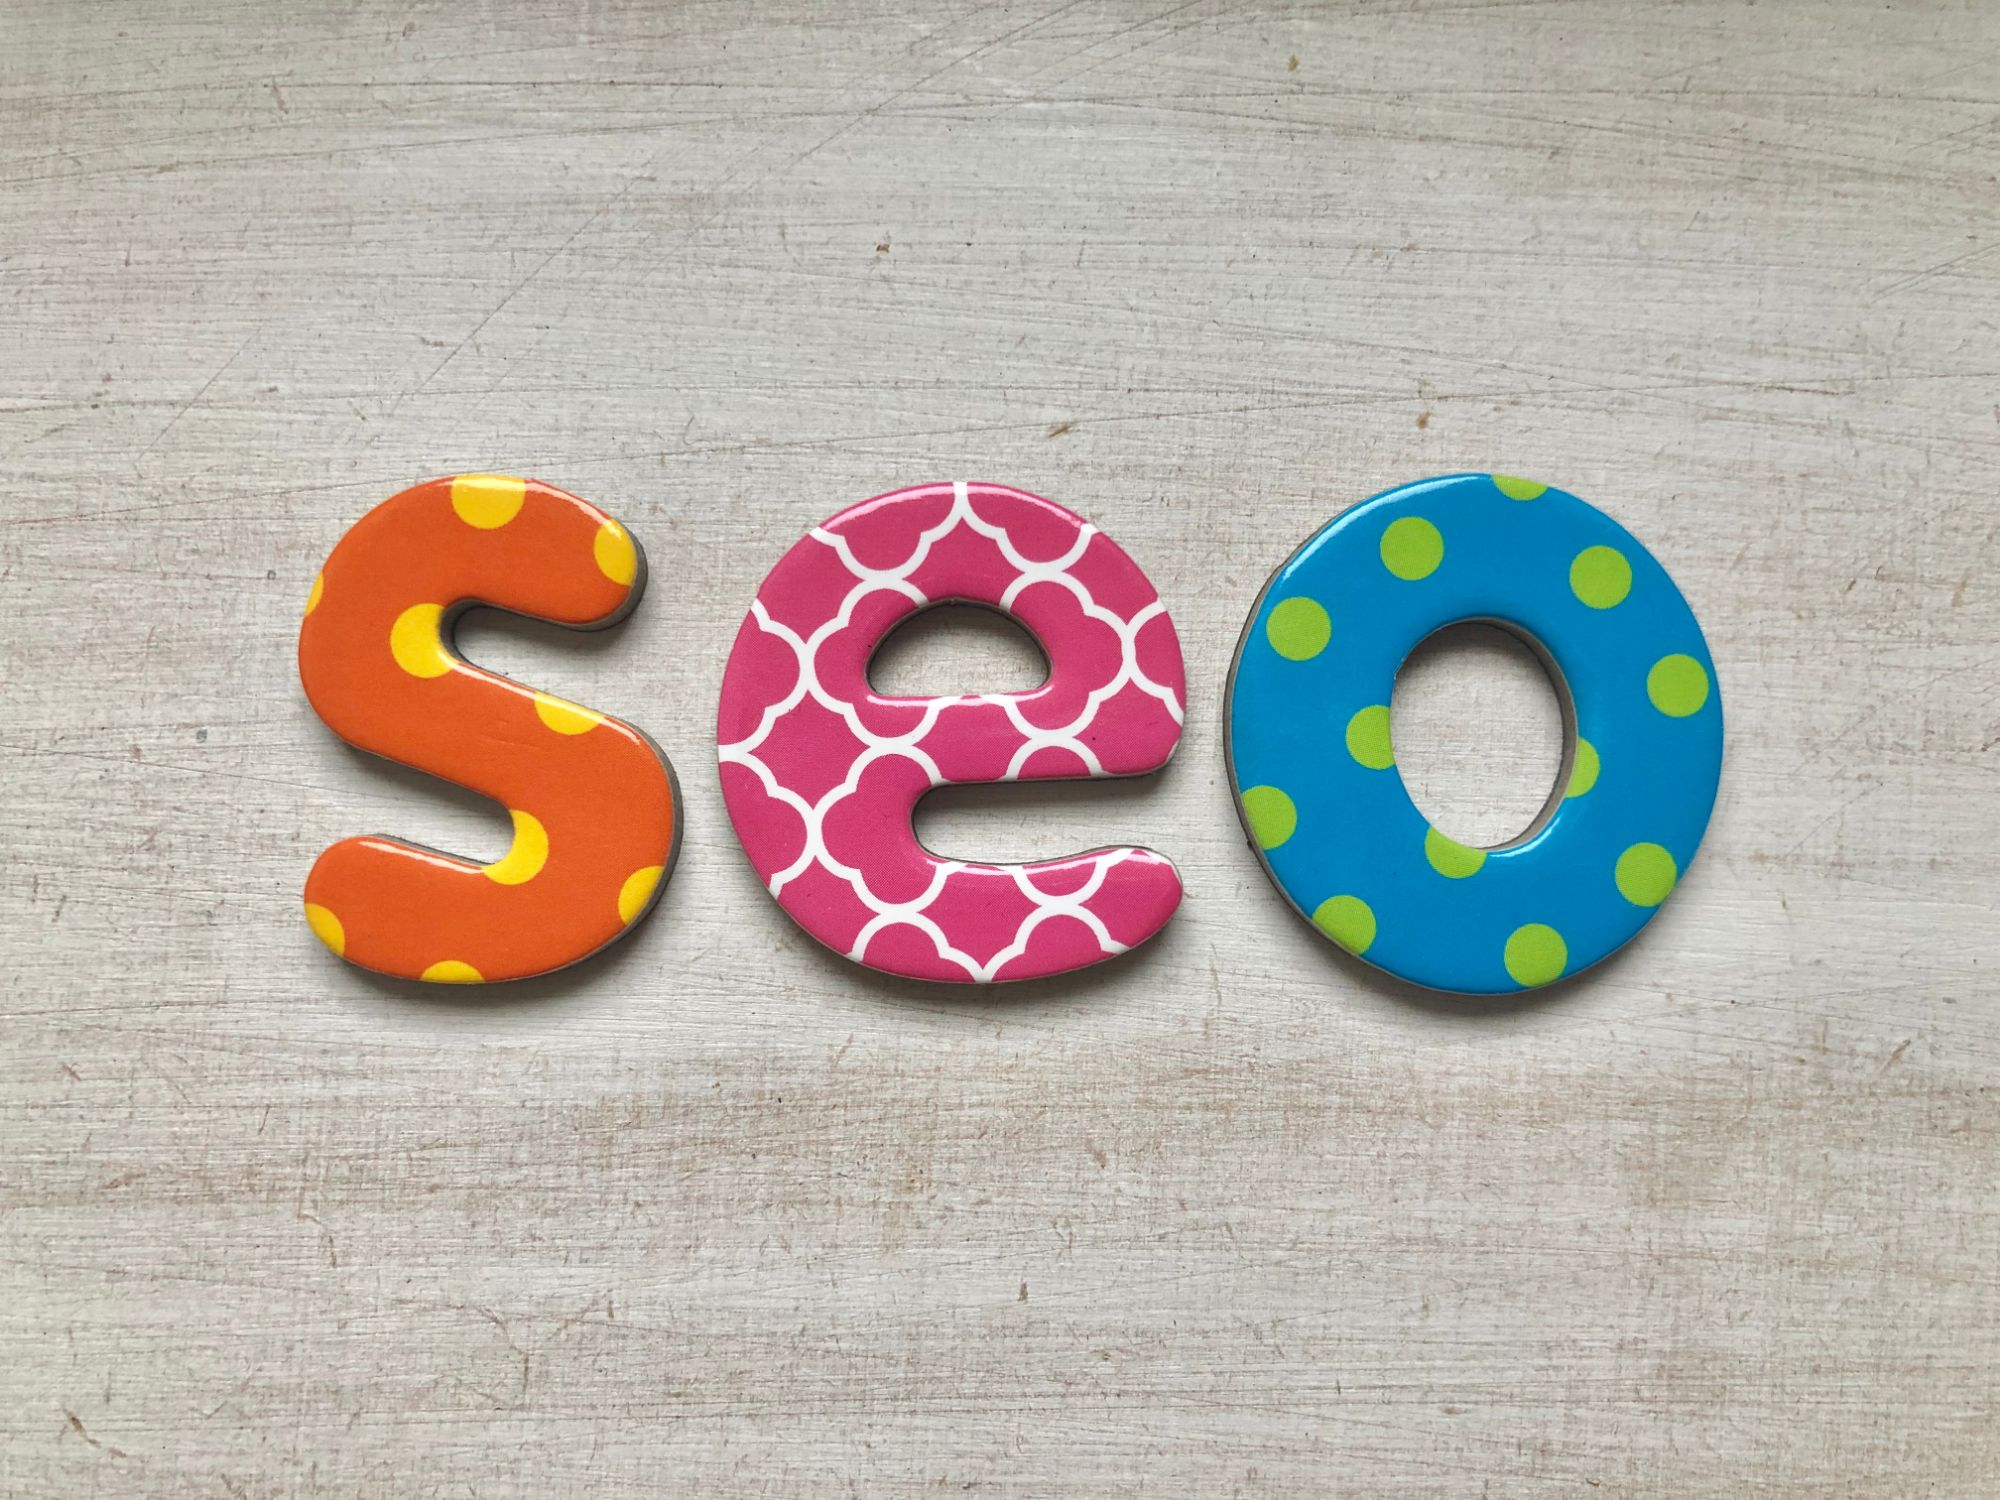 Free stock images for money bloggers blog -alphabet lettering letters white background colourful says  'seo'